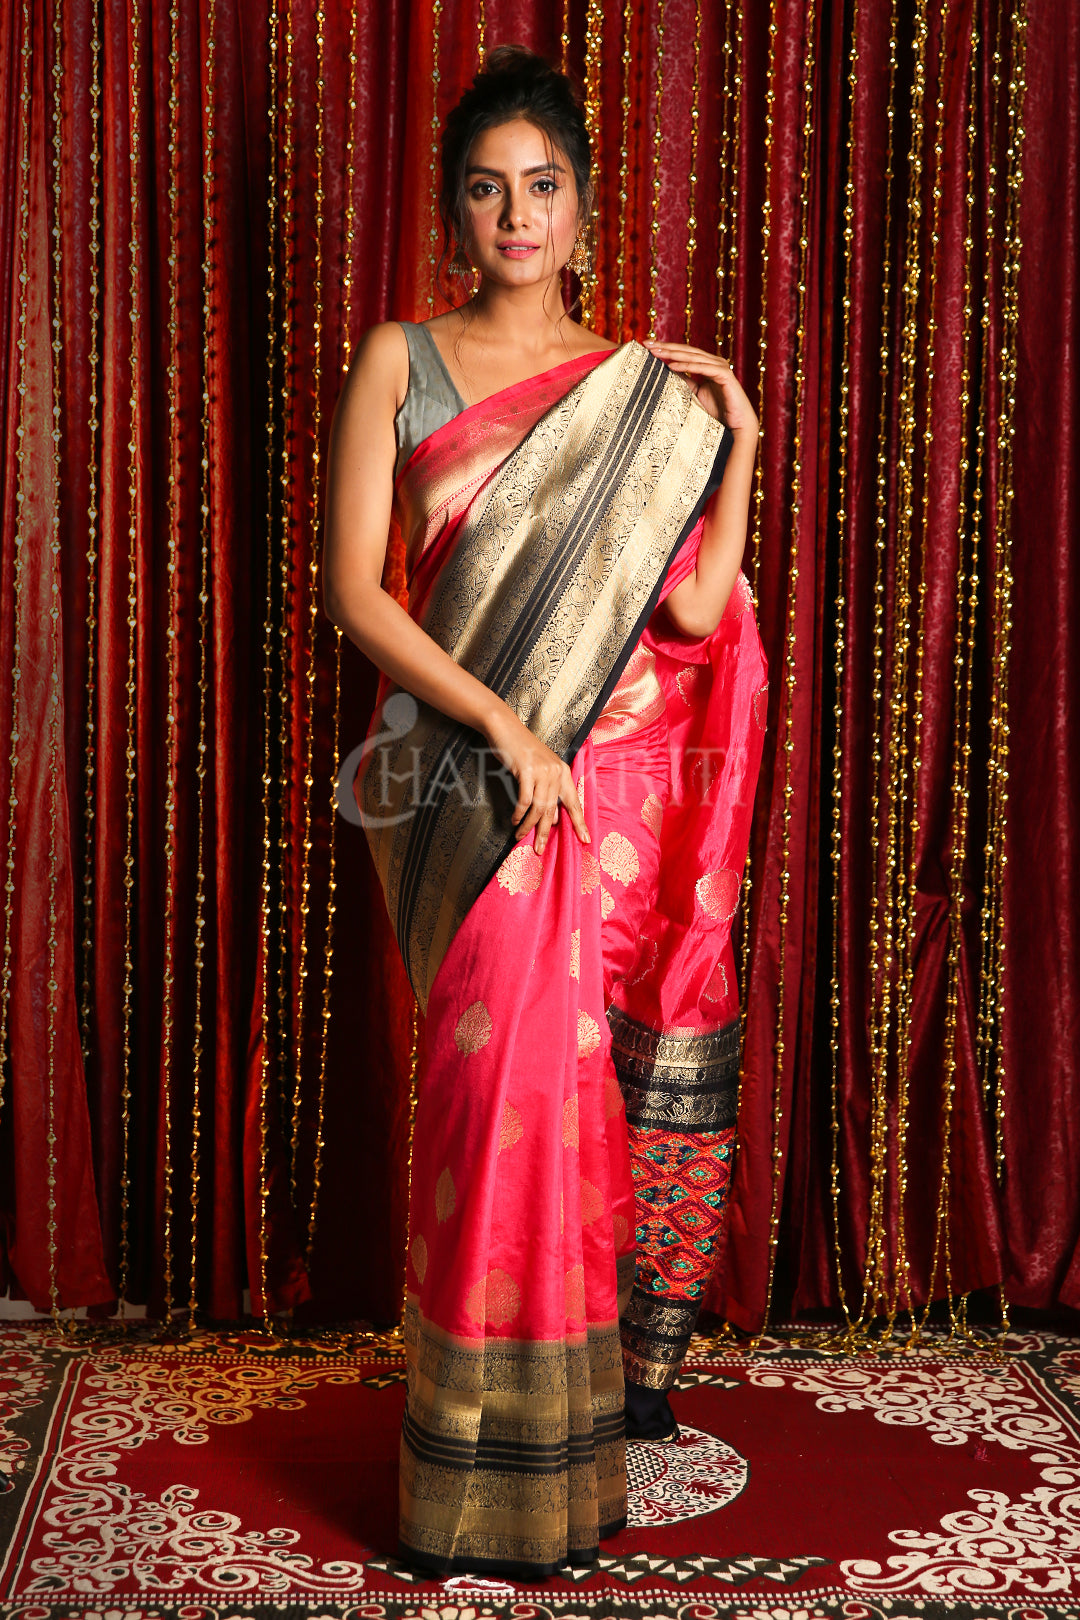 PINK MANIPURI KOTKI GARDWAL SAREE WITH DARK BLUE ZARI BORDER AND PALLU